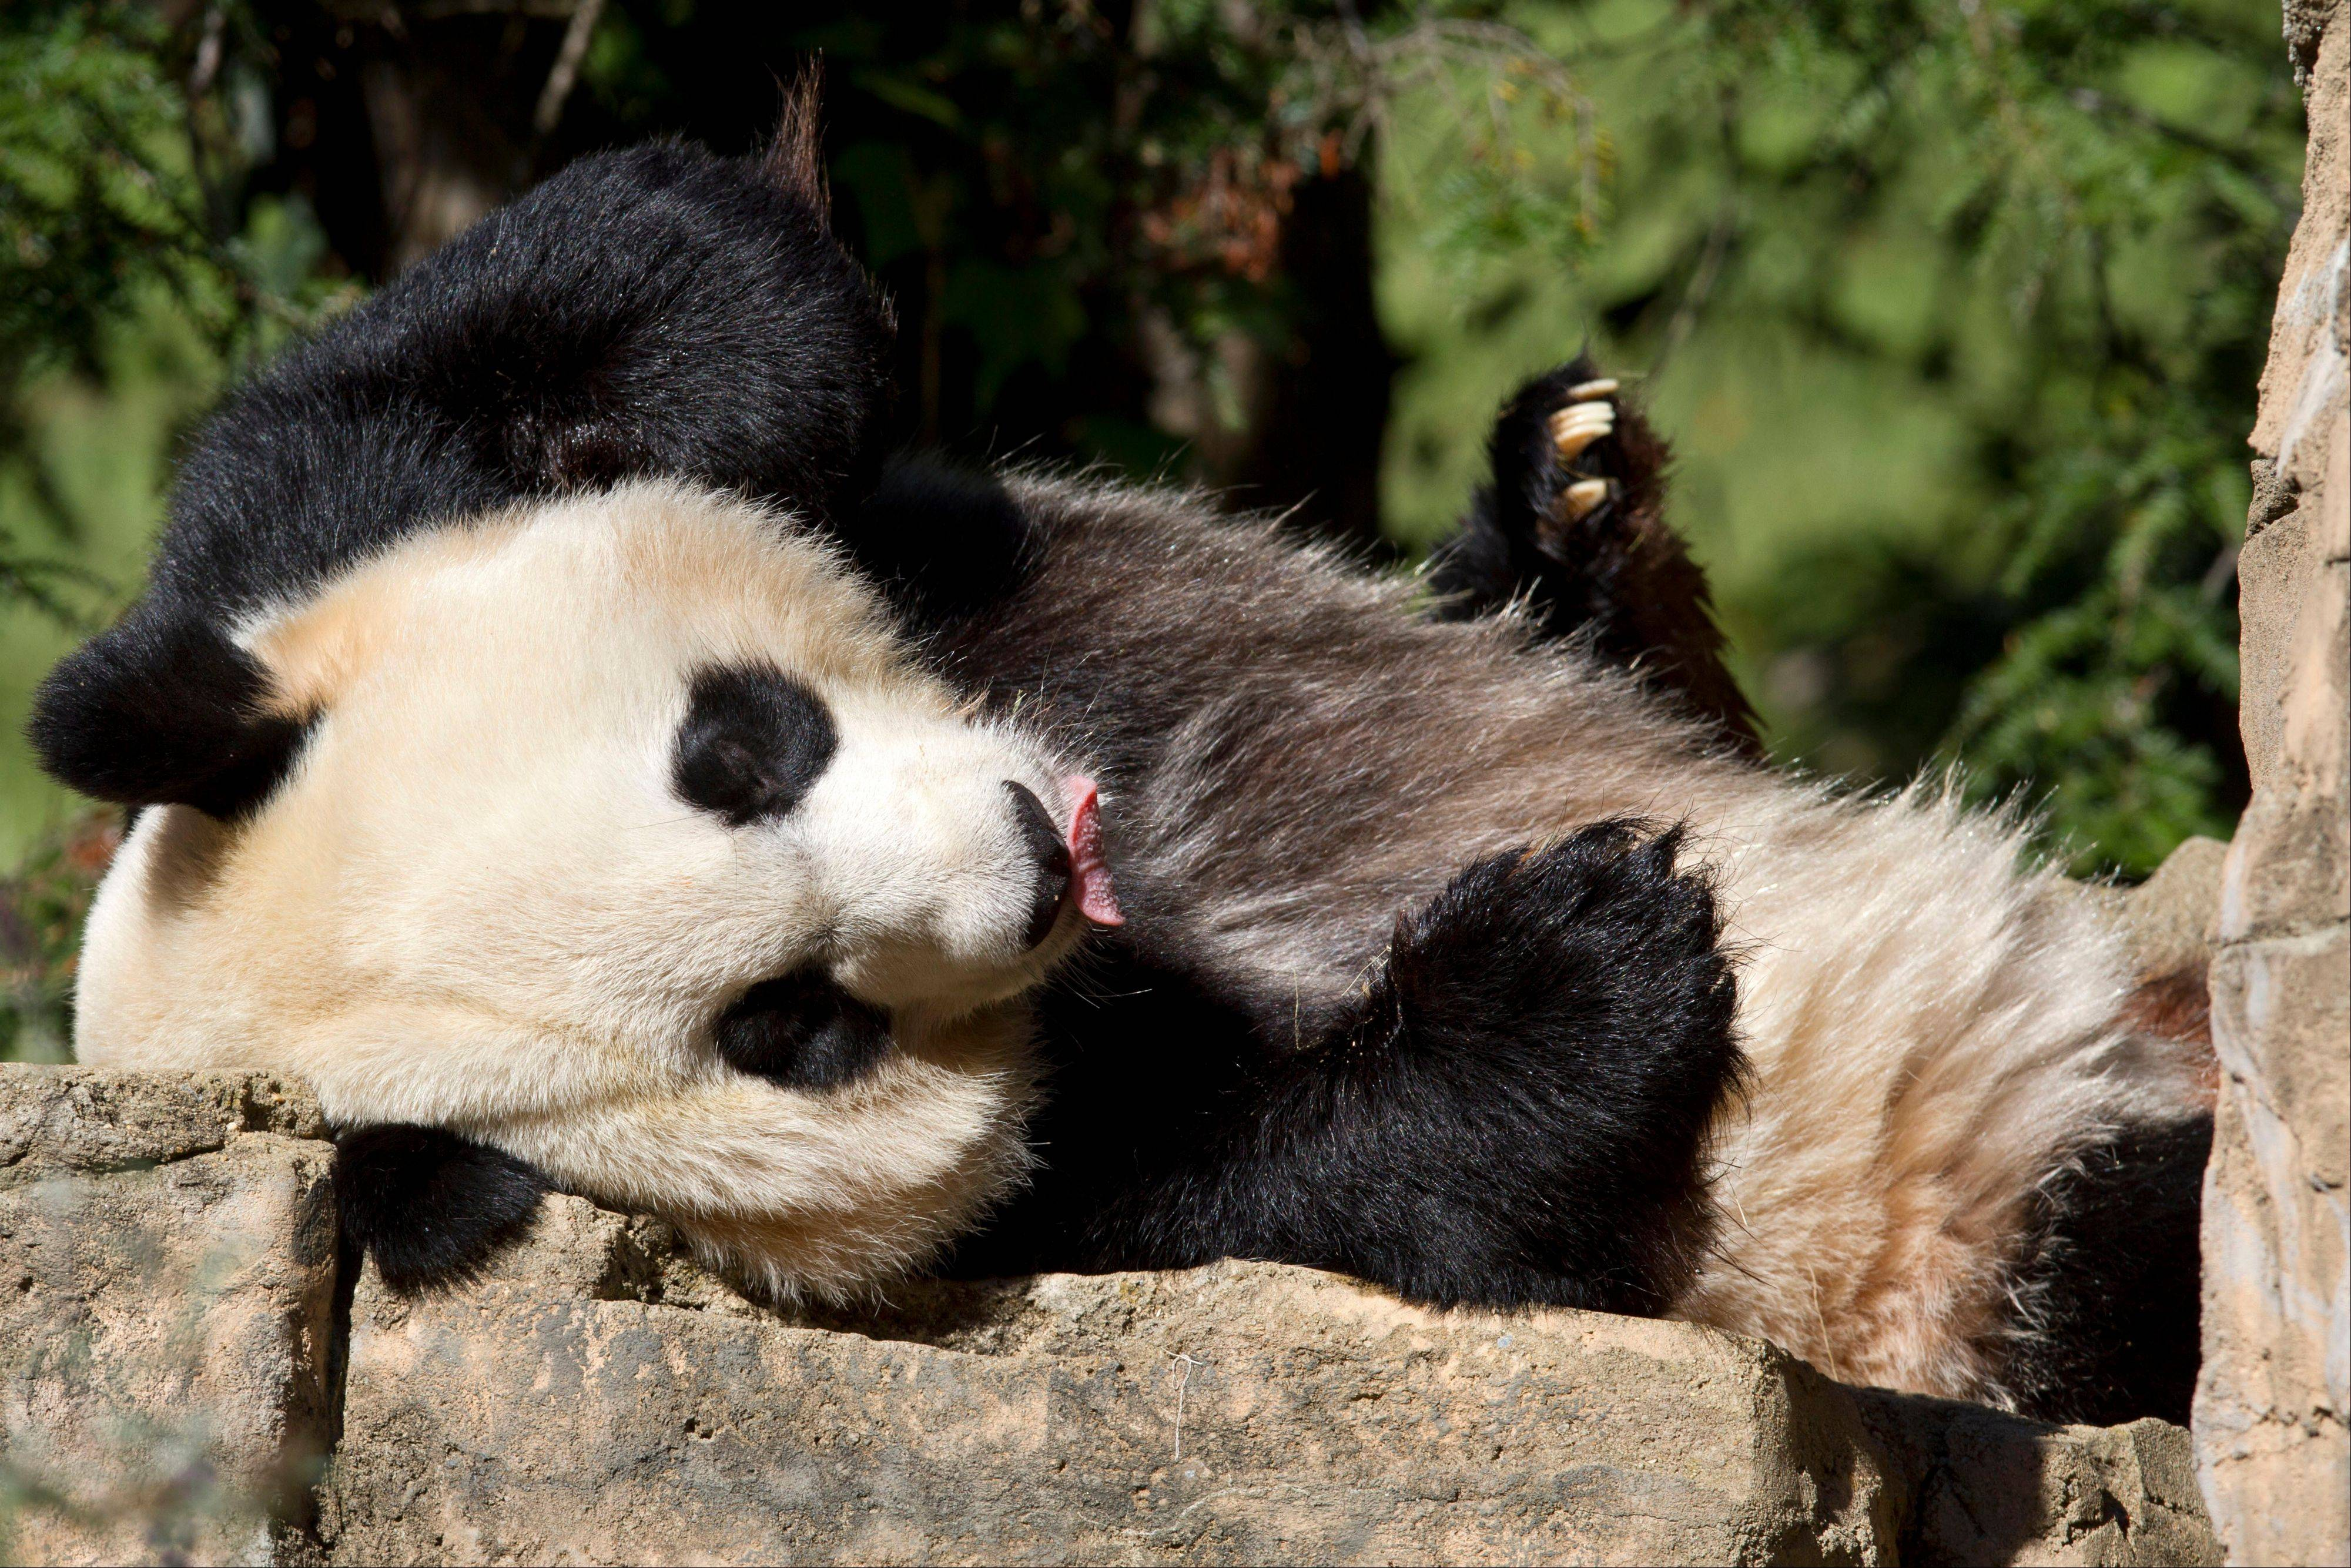 Mei Xiang, a giant female panda, rests at the National Zoo in Washington.